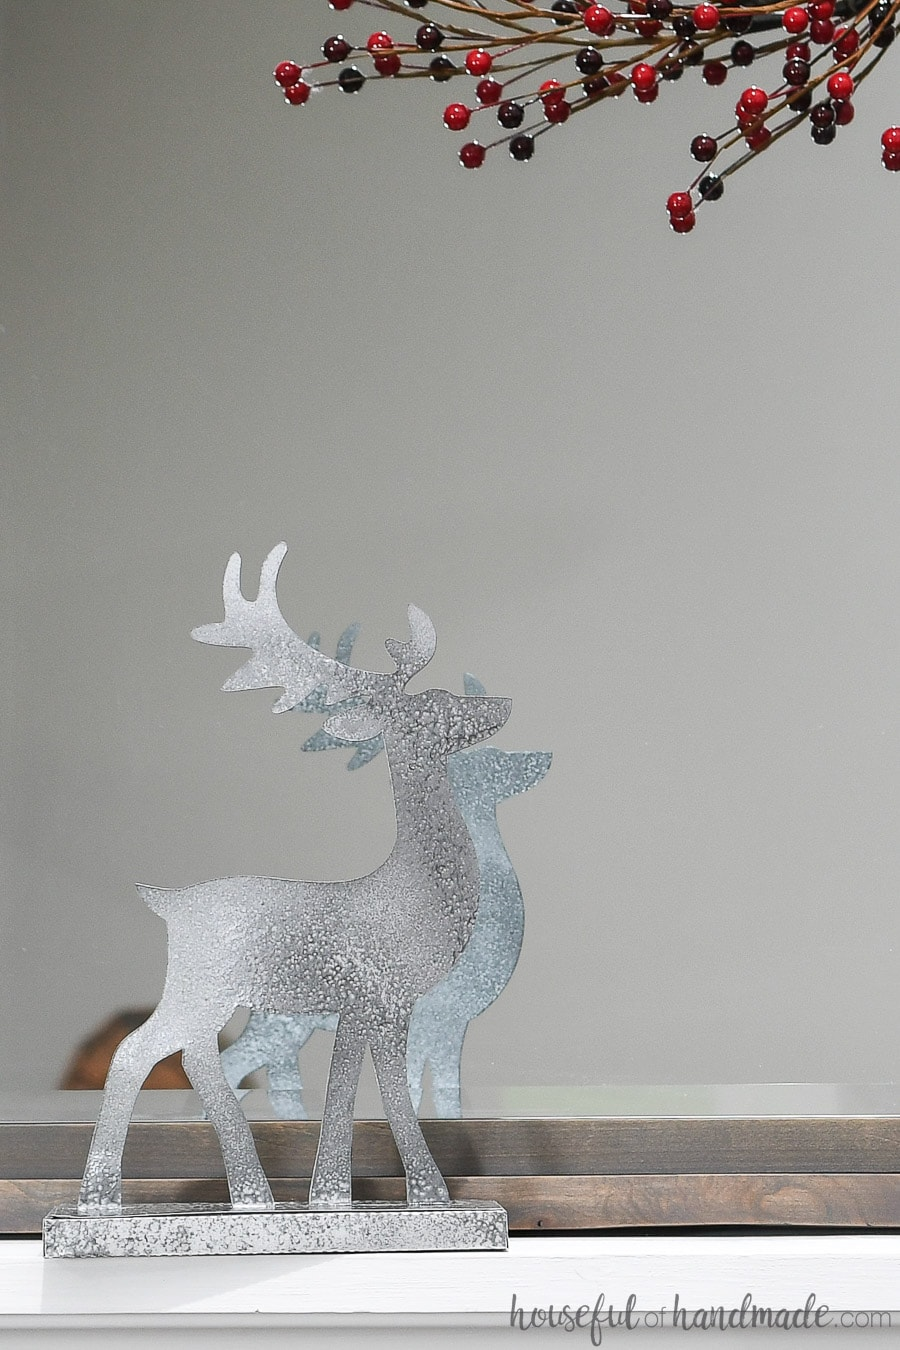 Close up of the Christmas reindeer decorations on the mantel in front of a mirror.